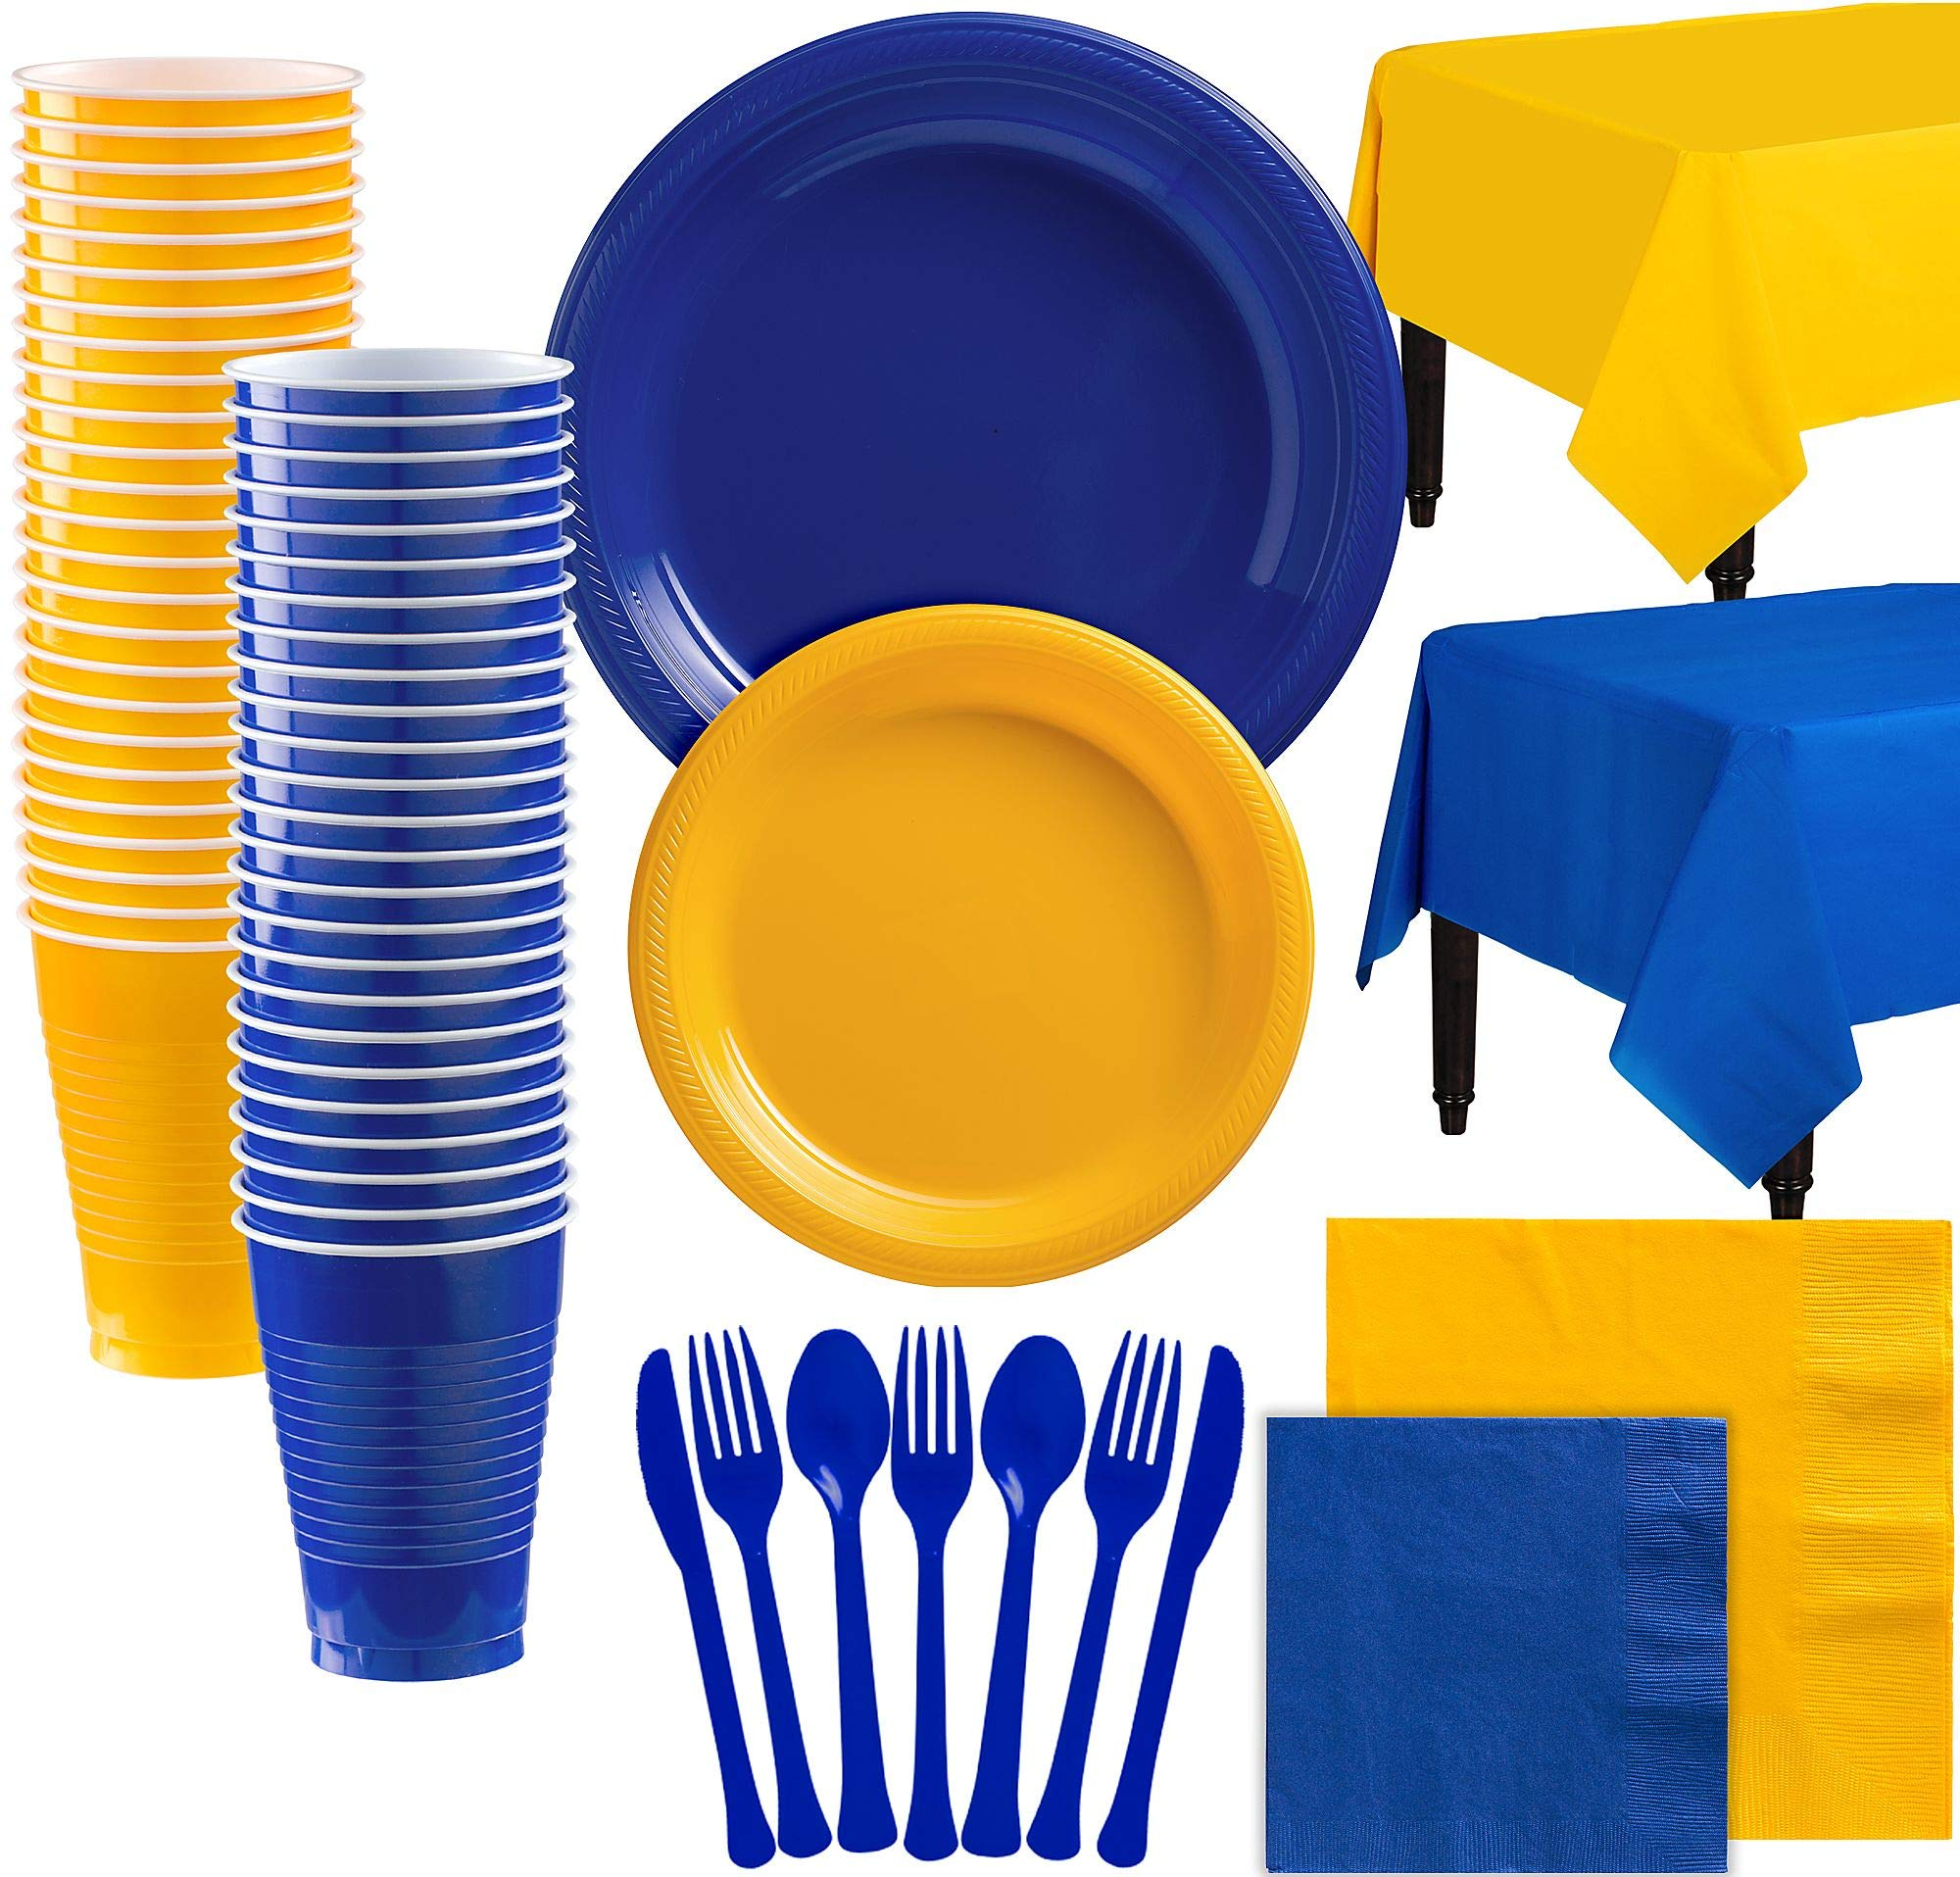 Party City Royal Blue and Sunshine Yellow Plastic Tableware Kit for 100 Guests, 852 Pieces, Includes Plates and Cups